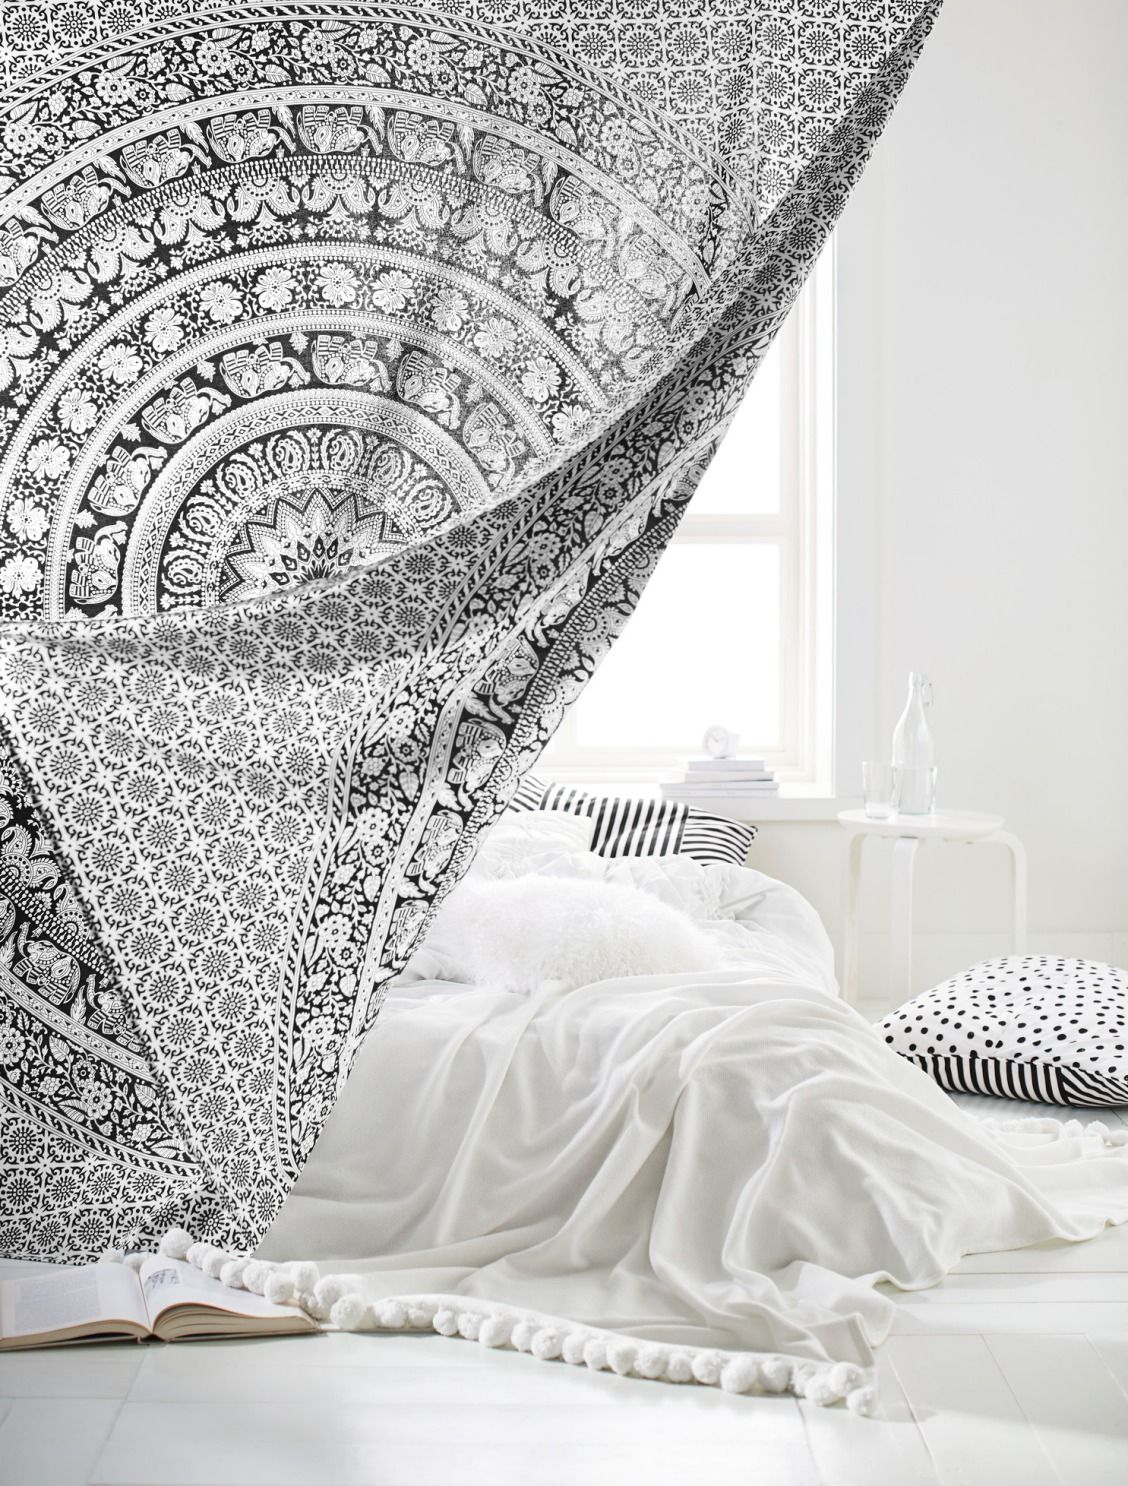 Drape Your Dorm. An Easy Way To Add Design To Your Home Away From Home,  This Tapestry Hangs From The Wall To Showcase Your Style.